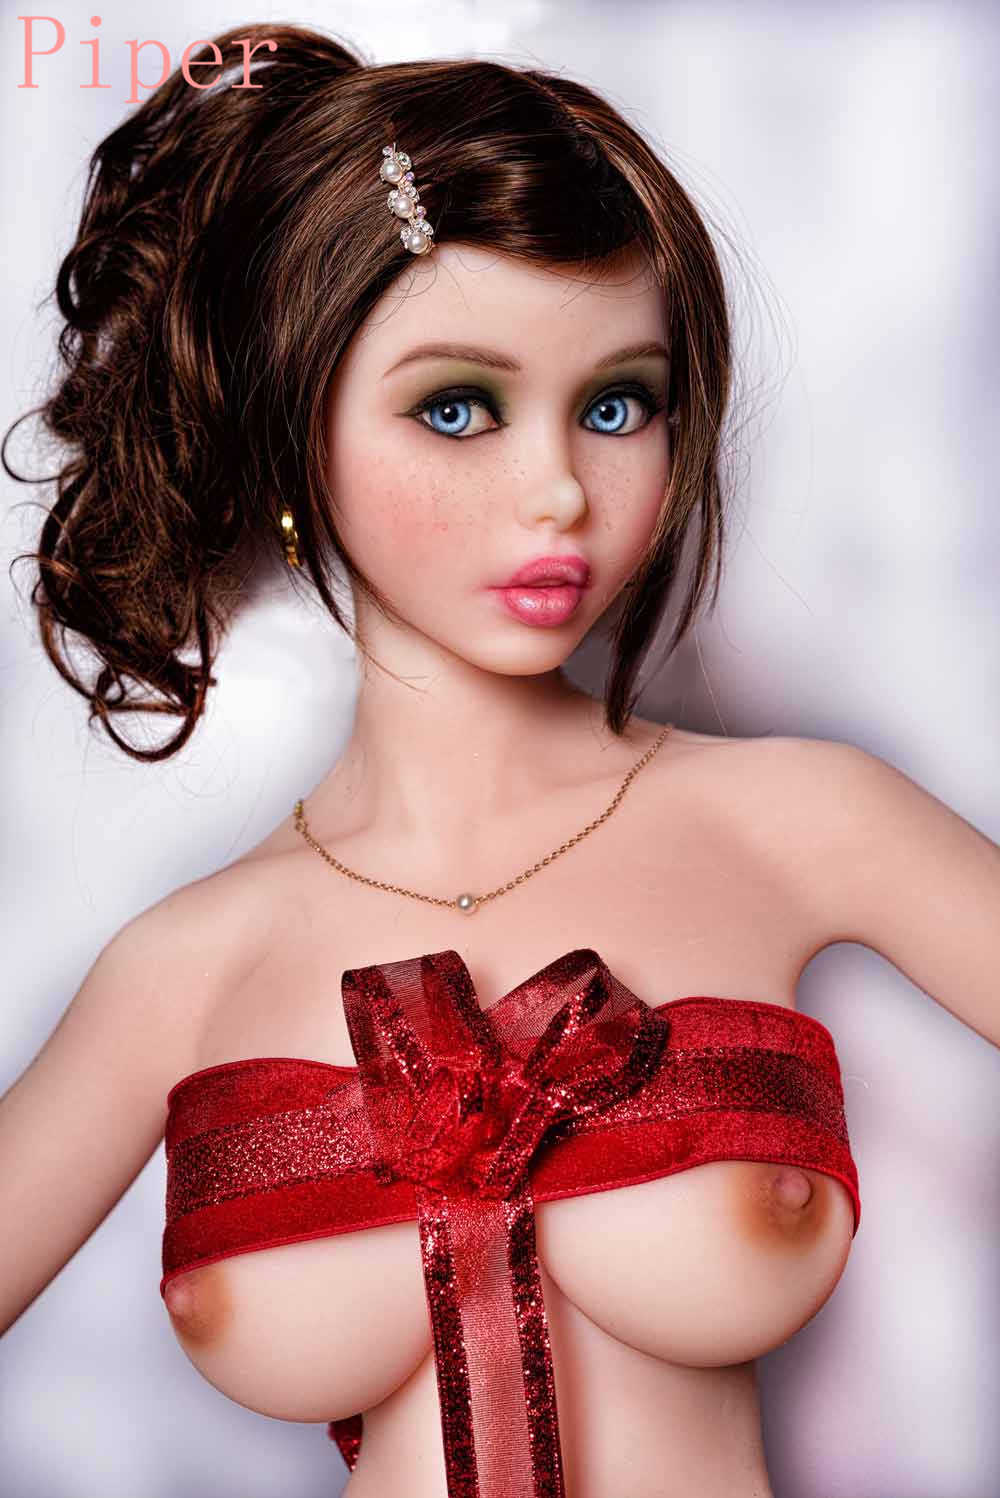 Skinny Young Girl Looking Sex Doll